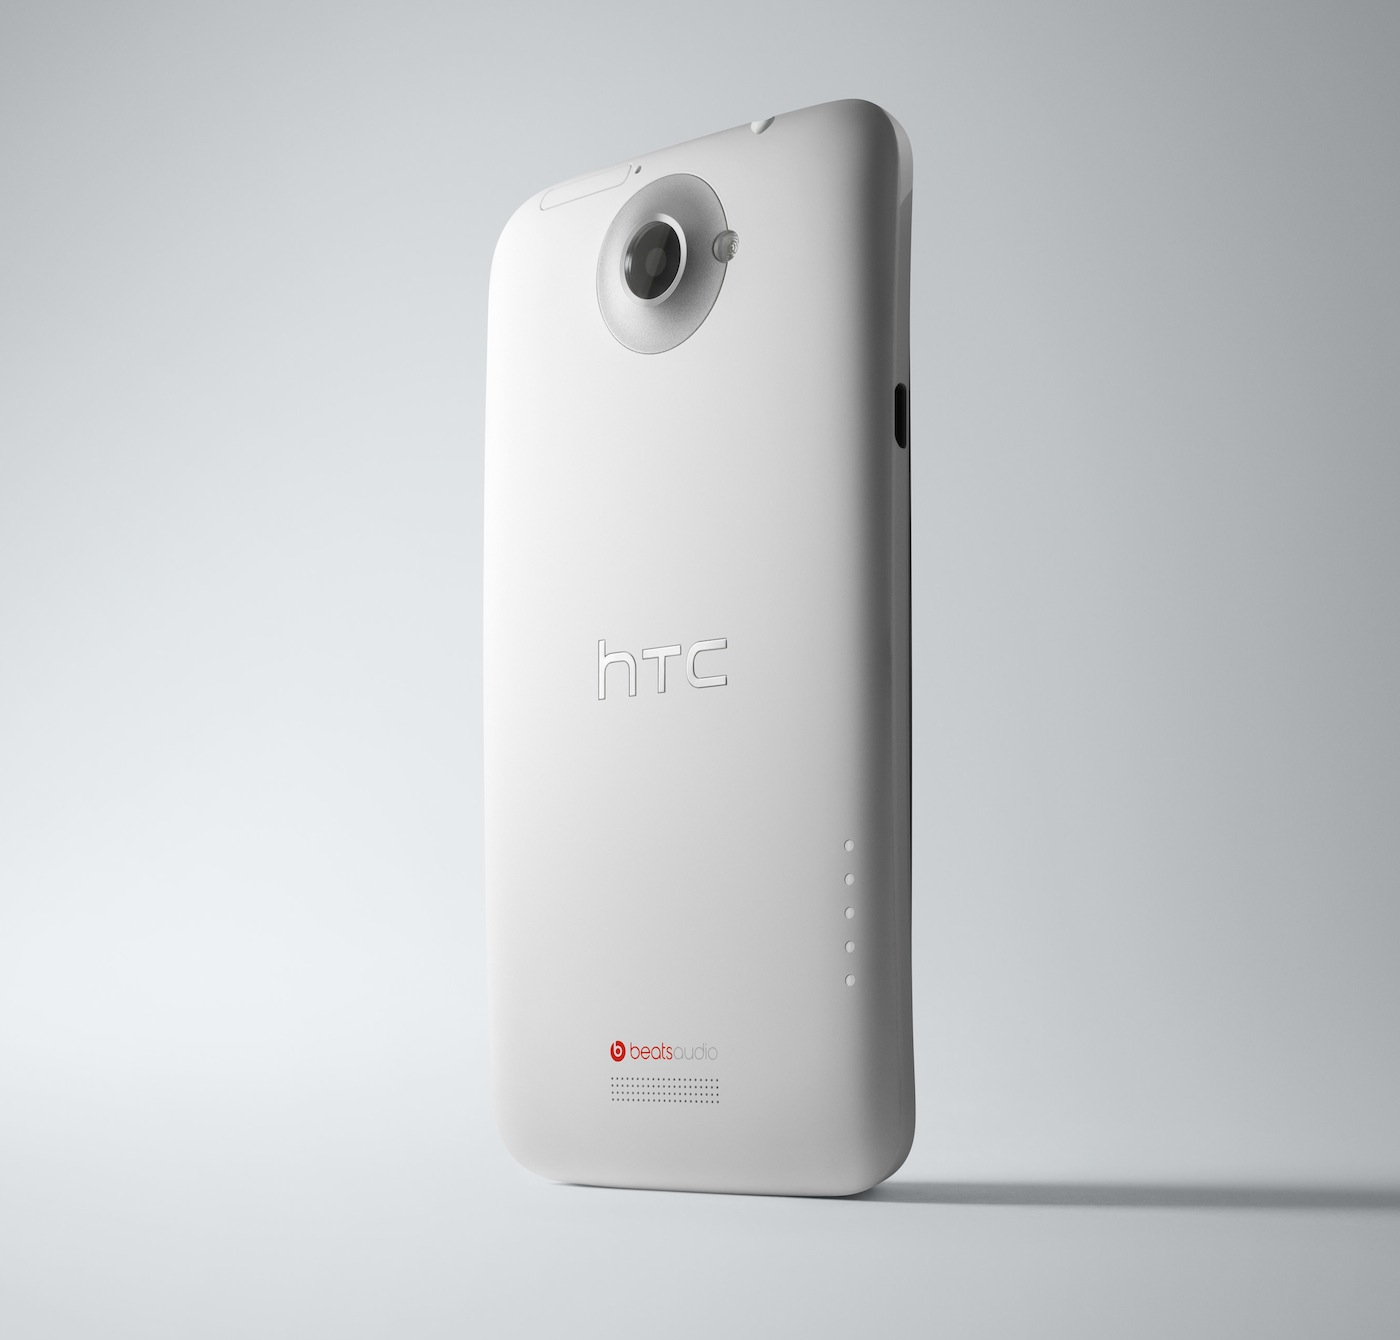 HTC-One-X-34BACK_RGB.jpg